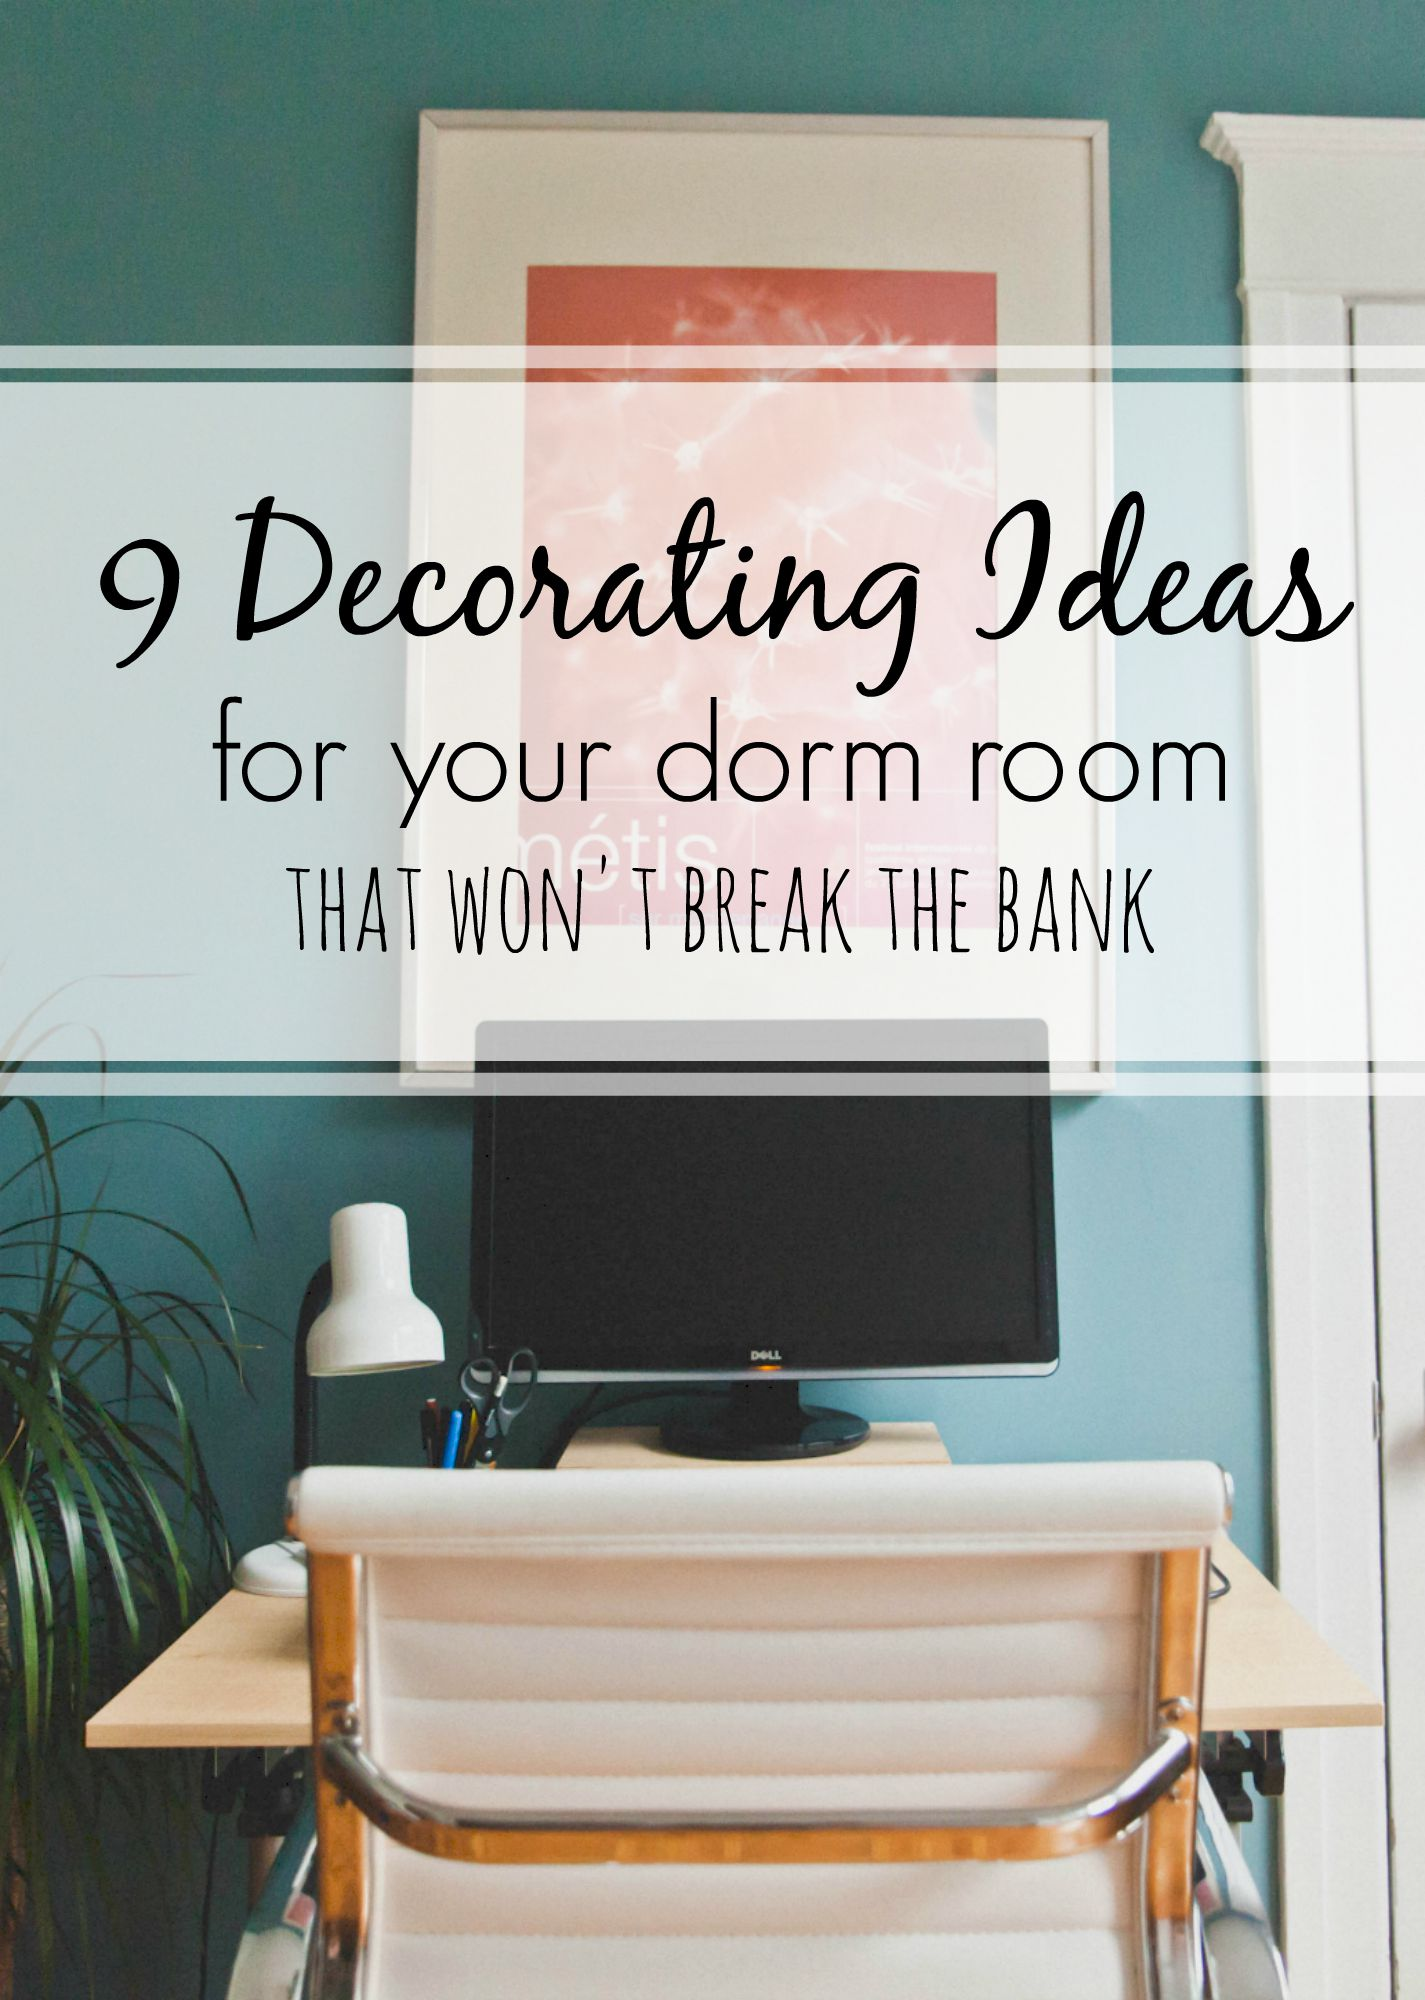 Cheap & Easy Decorating Ideas for Small Dorm Rooms!